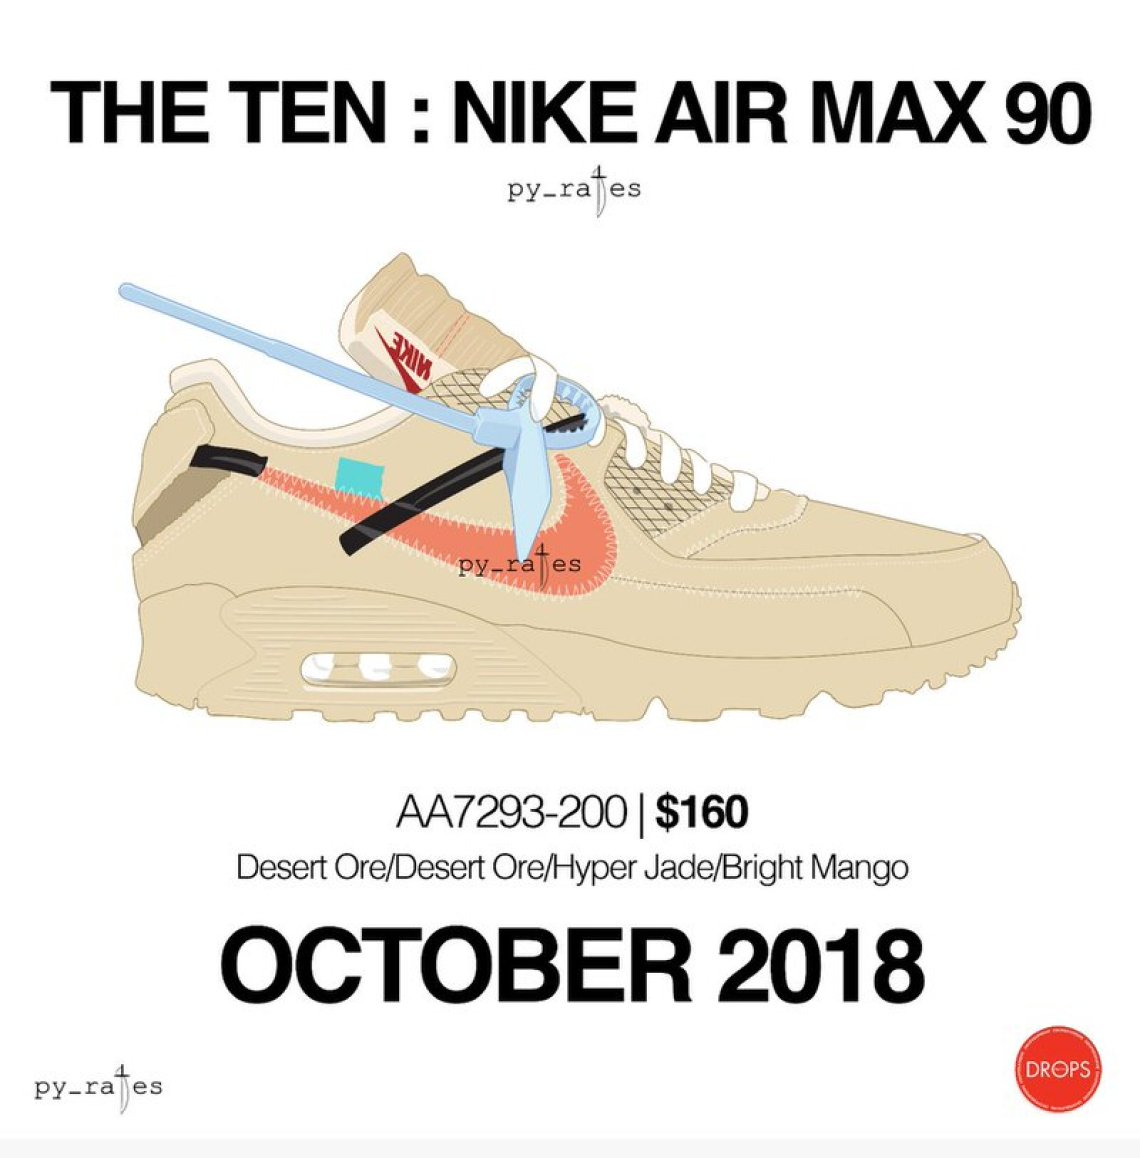 """d289d3c5f6e0 The new Off-White x Nike Air Max 90 """"Sail"""" is said to be dropping in  October according to  Pyrates. Stay tuned with Nice Kicks for updates."""